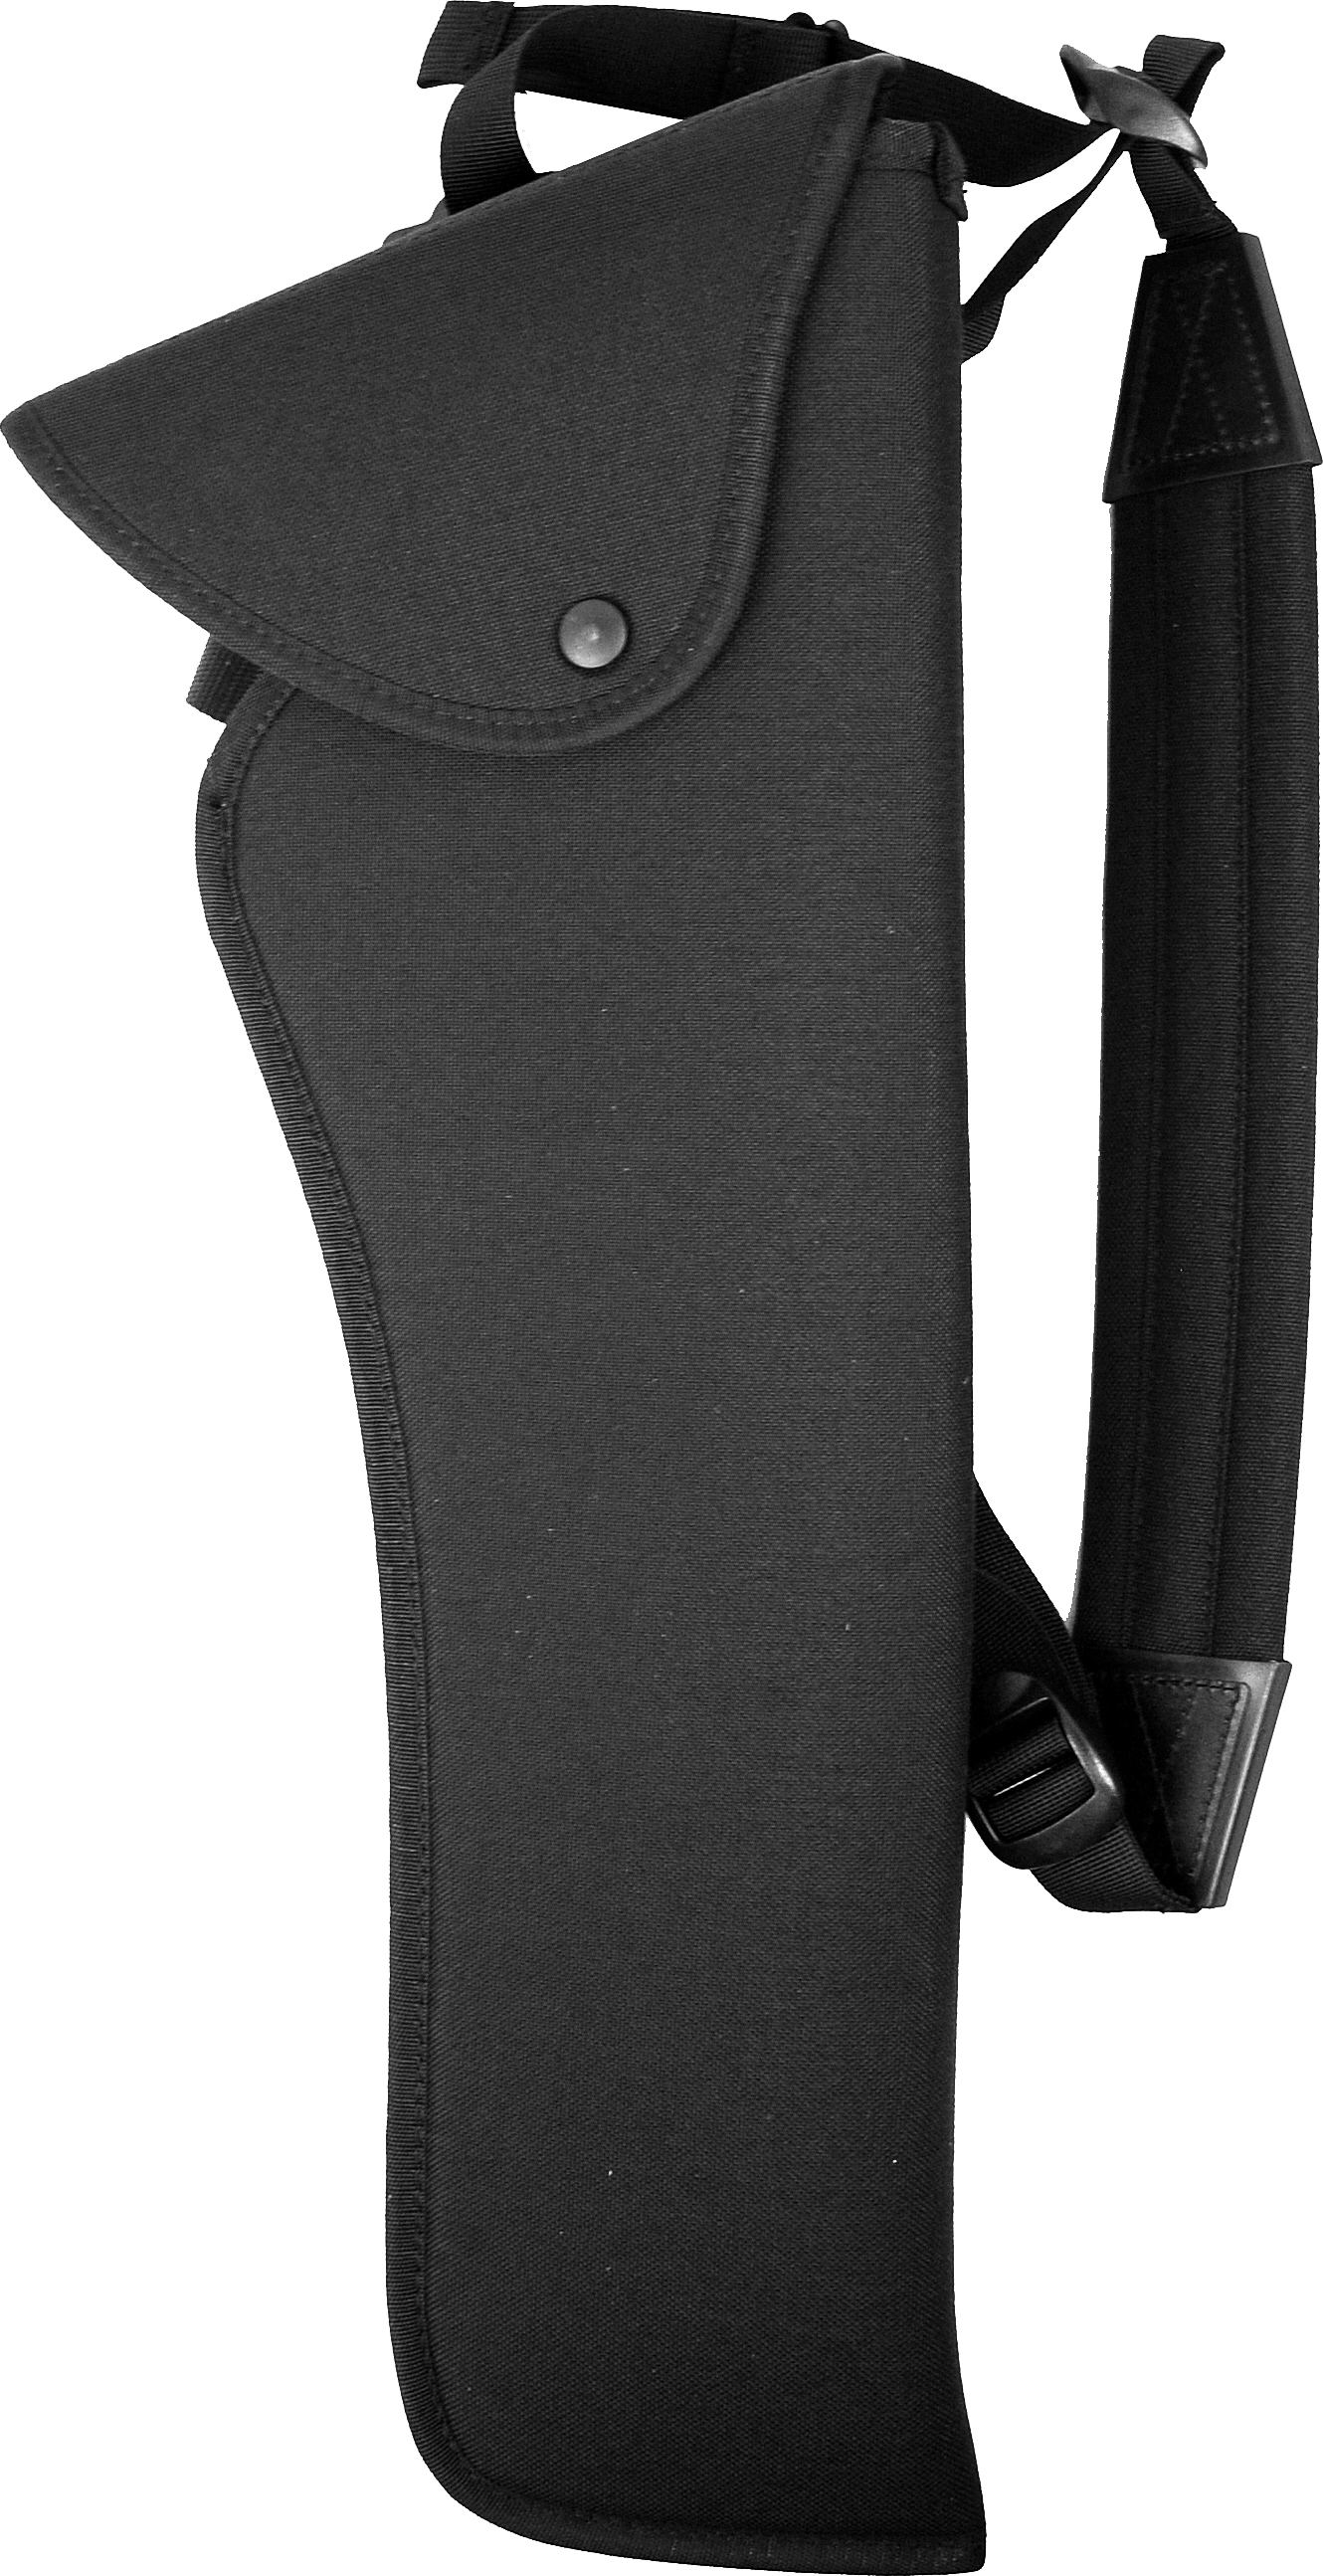 Uncle Mike's Sidekick Bandolier Holsters